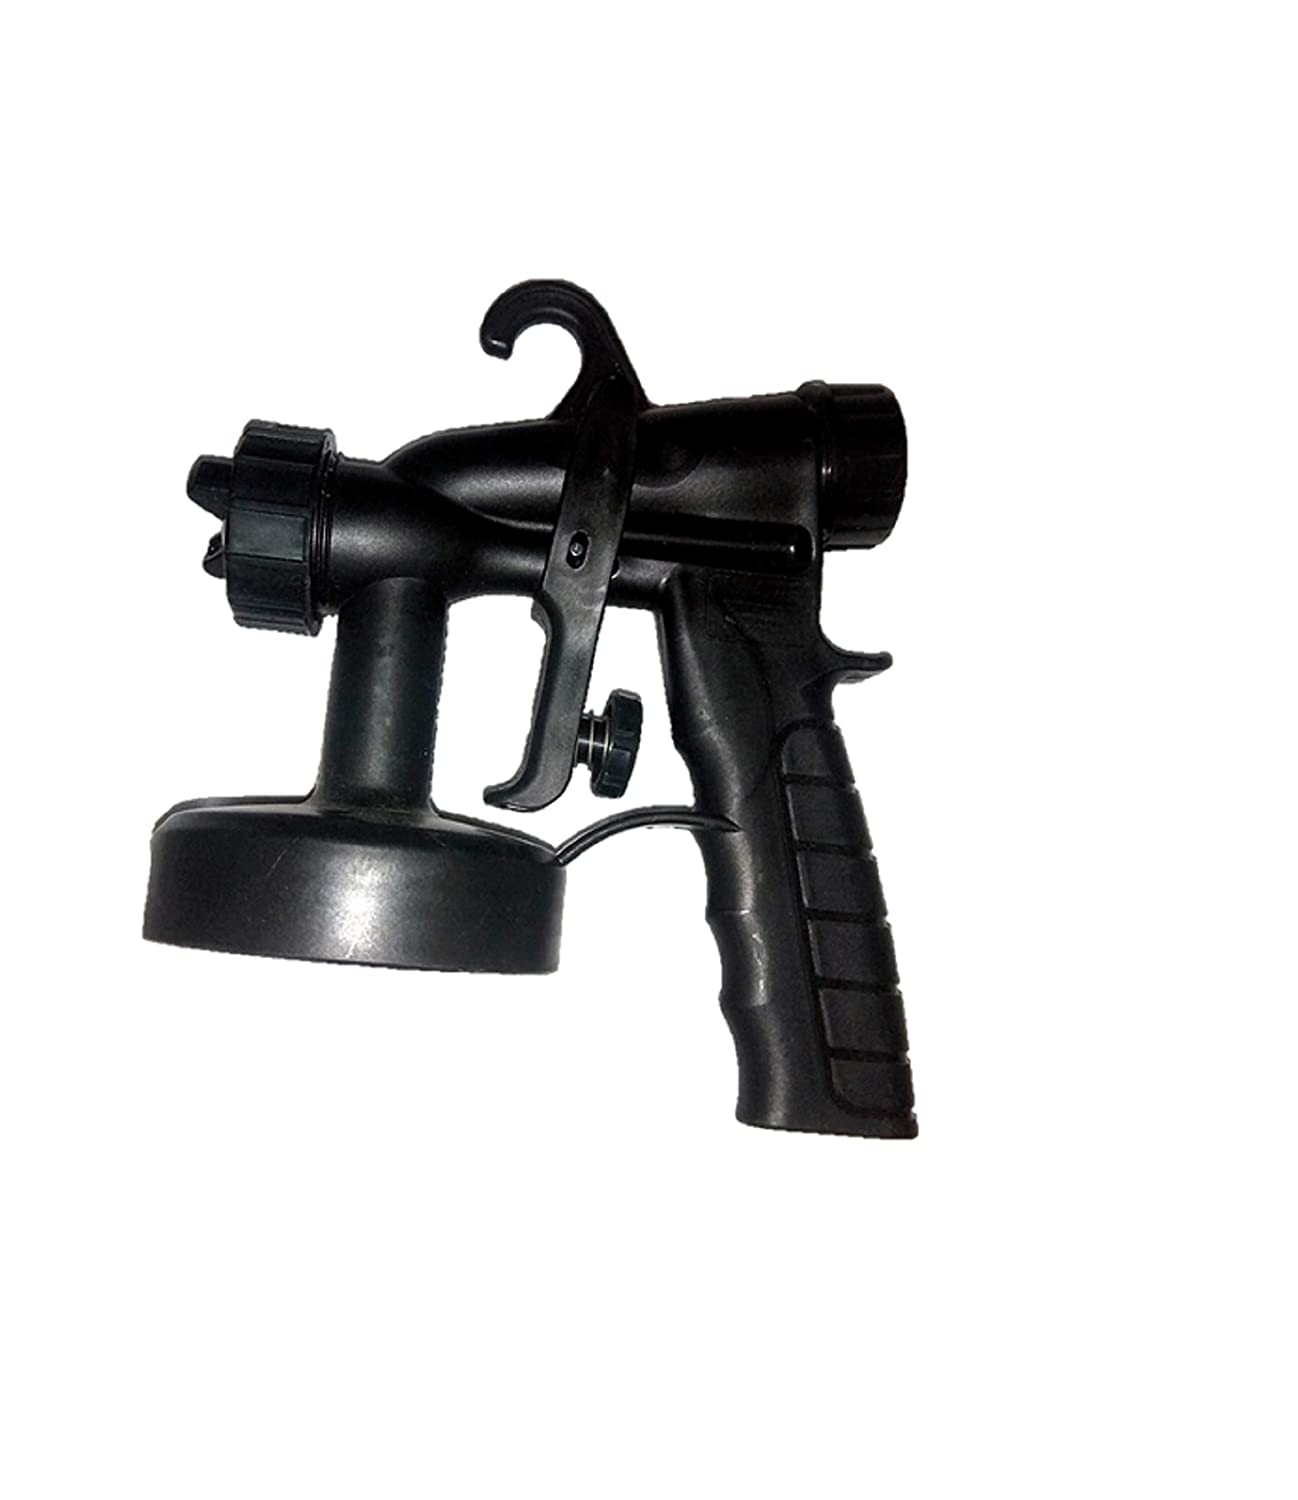 AMIDE BY AD Fiber and Plastic Paint Zoom Parts Spray Gun (Black)